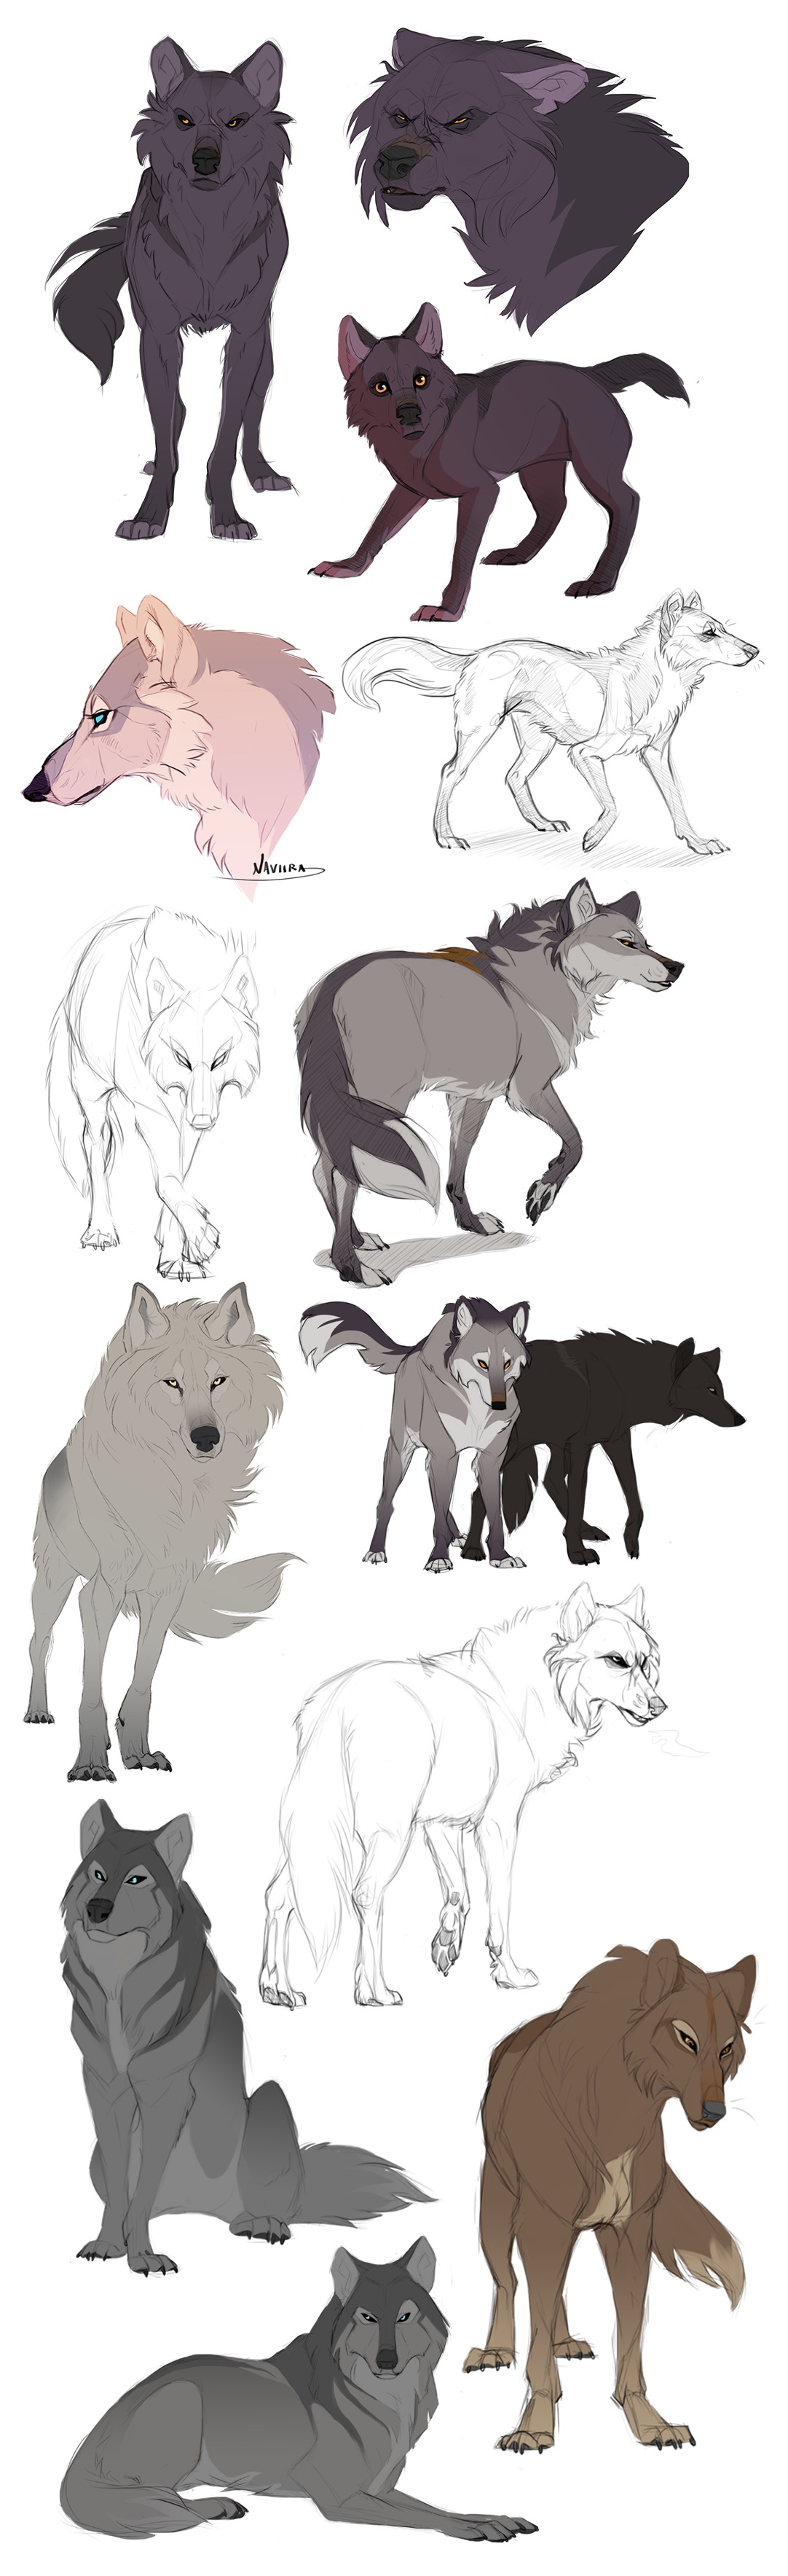 Pin by Eto Bune Pinskacinad on Drawing References | Pinterest | Wolf ...